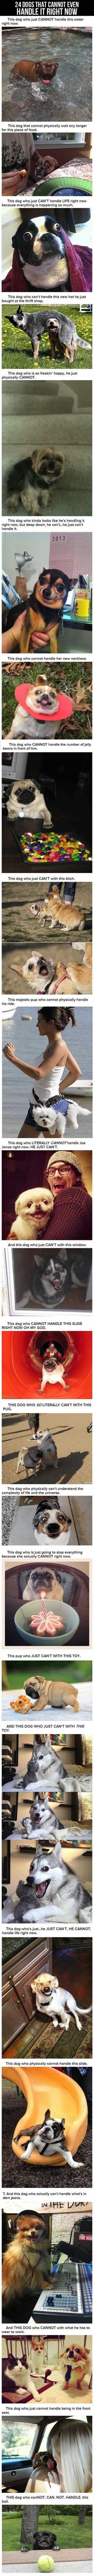 24 Dogs That Cannot Even Handle It Right Now cute animals dogs adorable dog puppy animal pets lol humor funny pictures funny animals funny pets funny dogs: